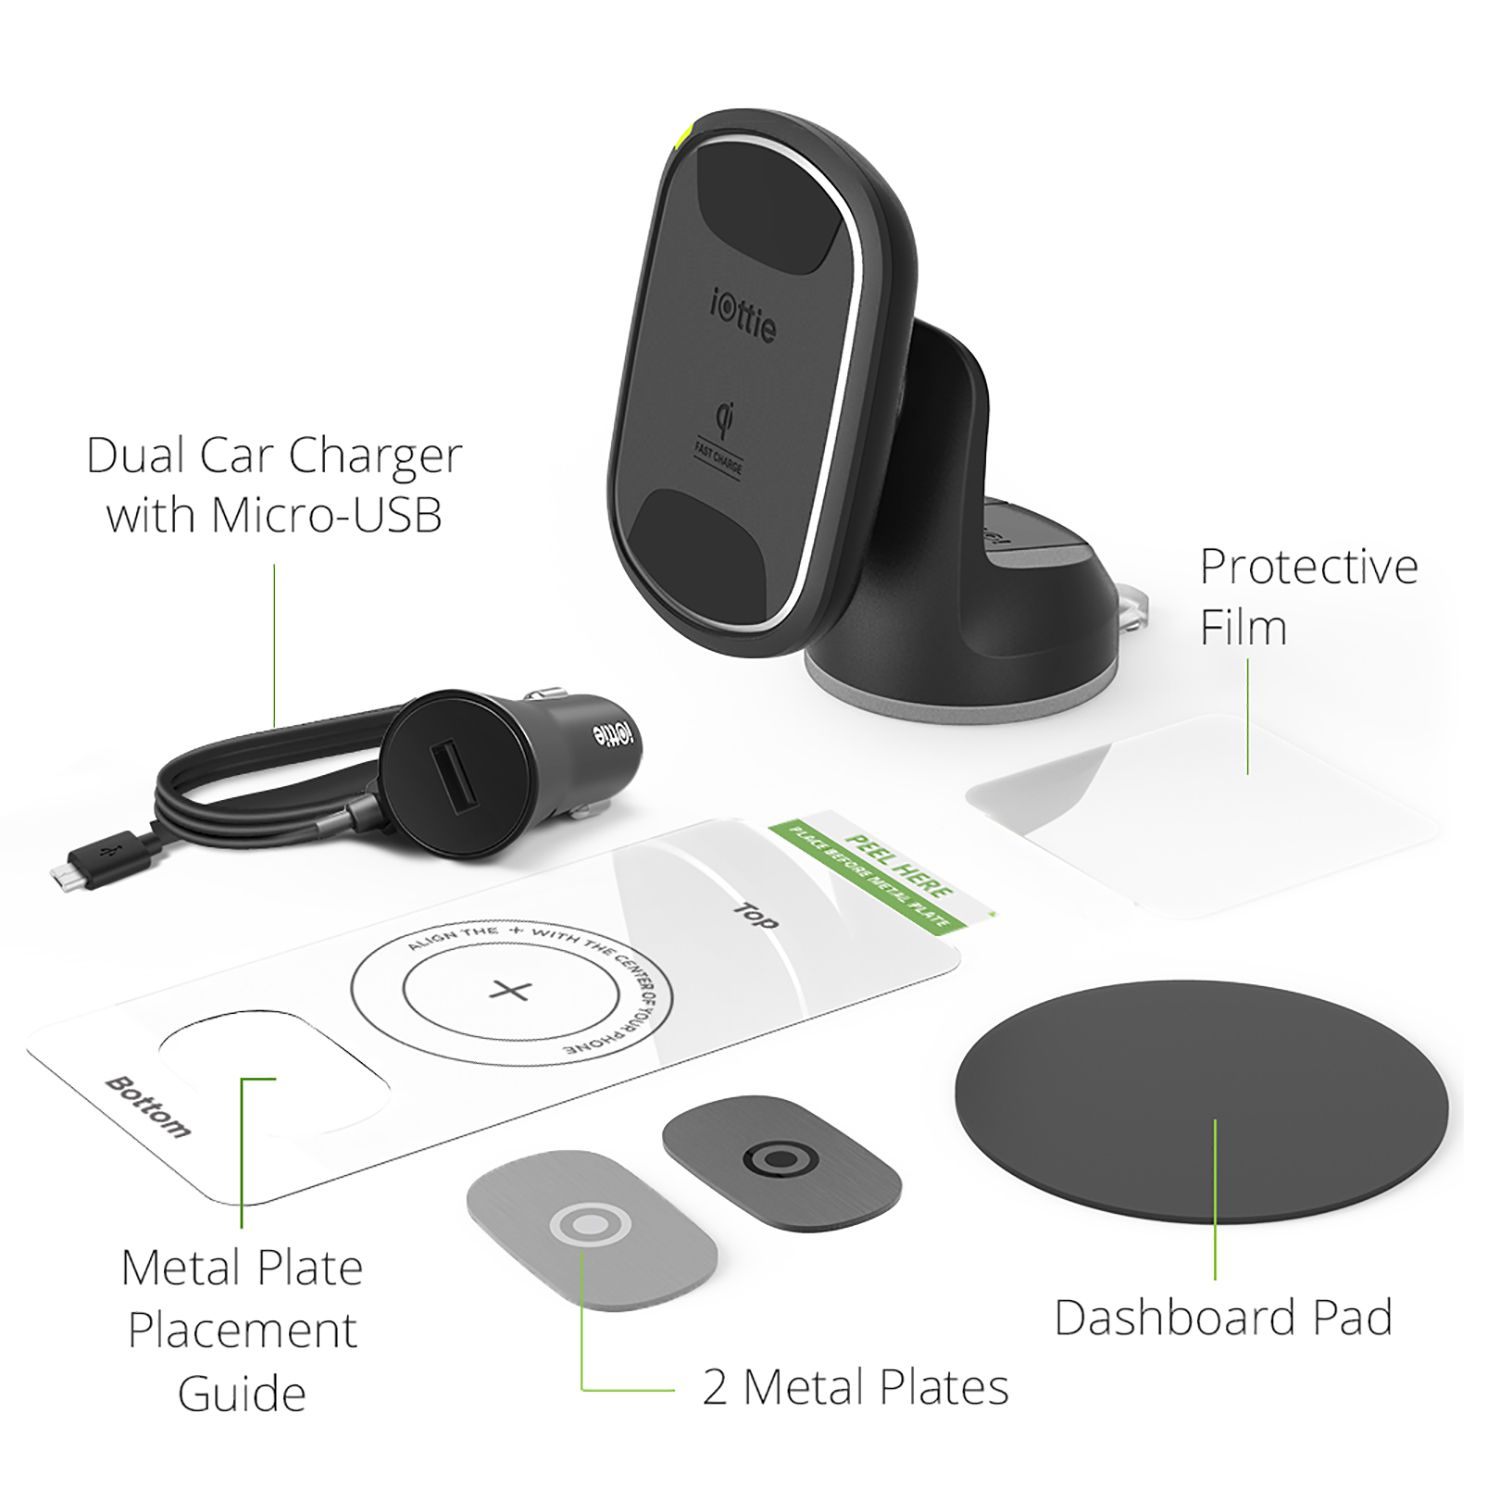 The contents of the iOttie iTap 2 Wireless Dashboard Mount.